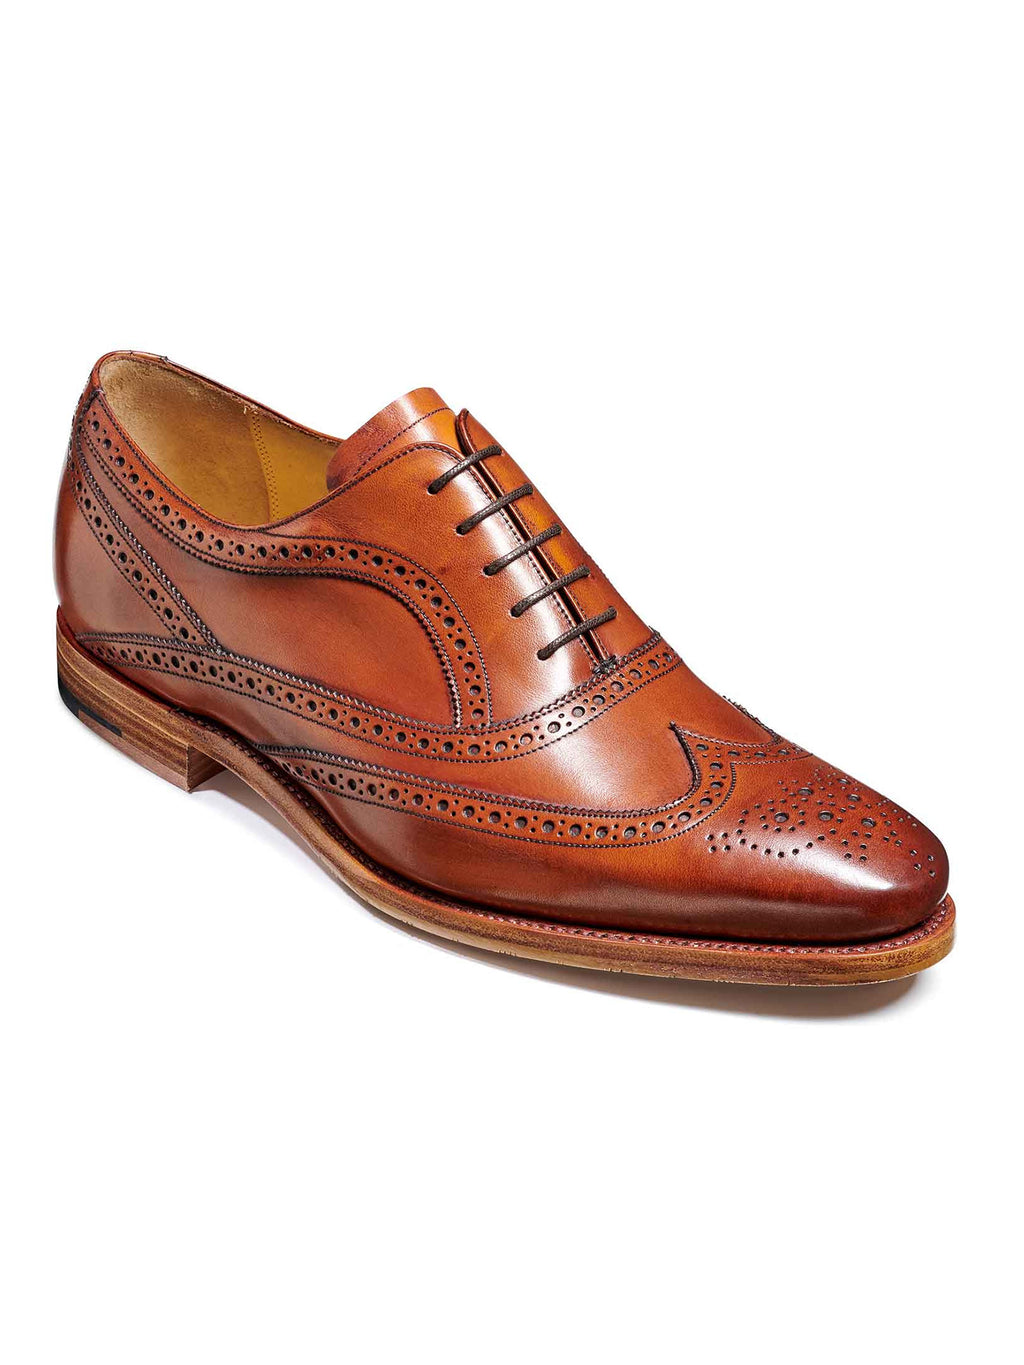 barker shoes turing rosewood